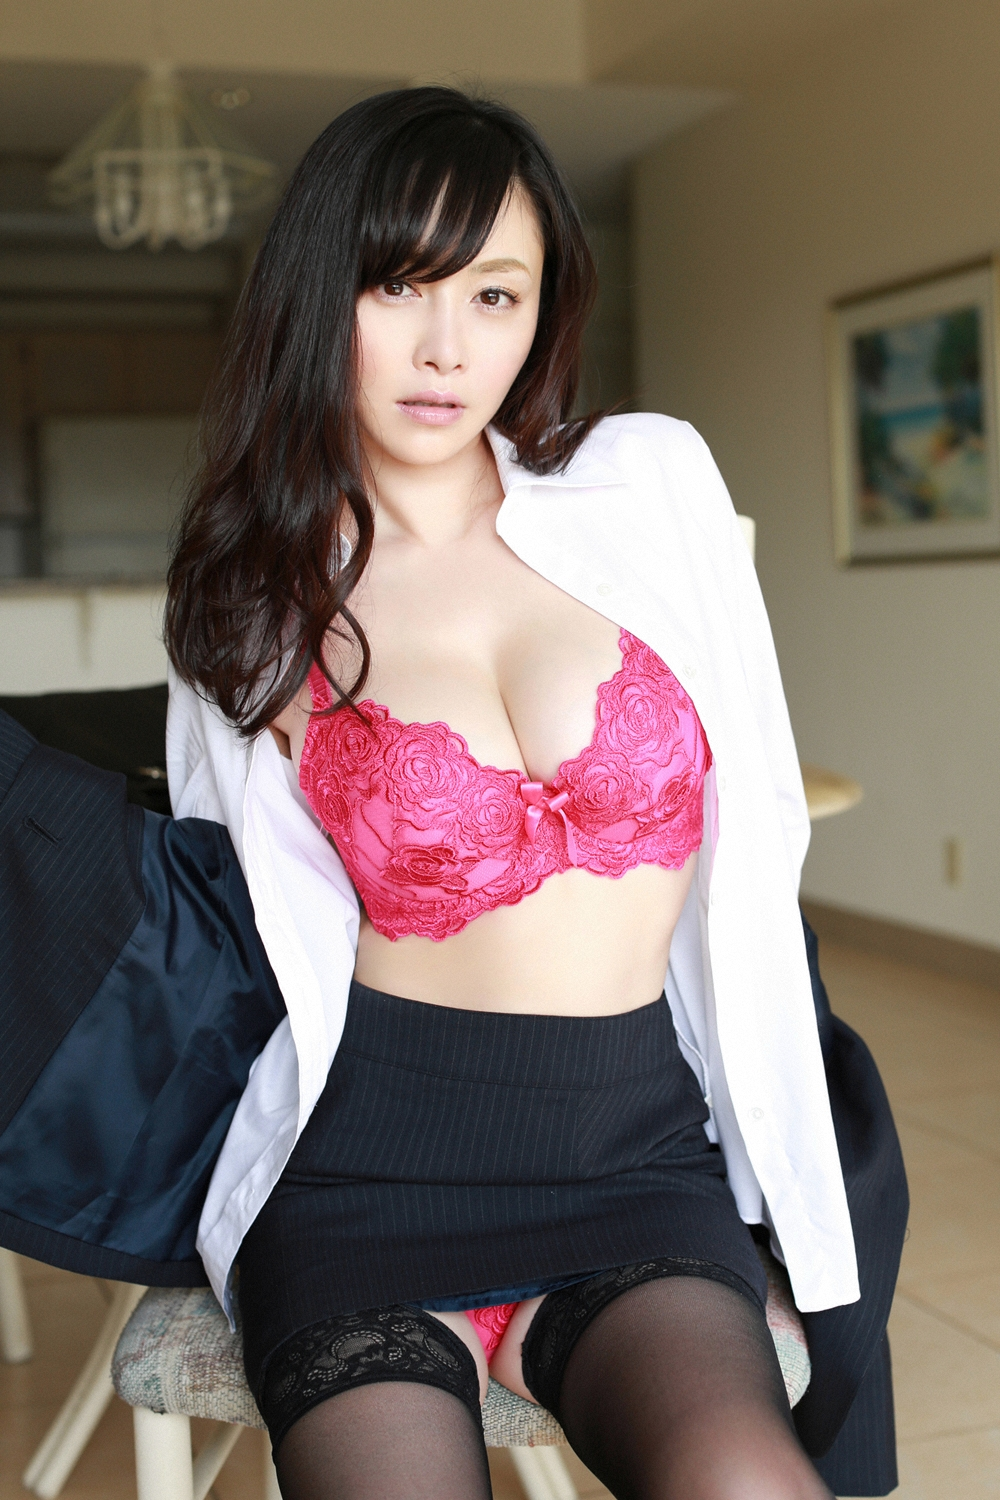 杉原杏璃 Anri Sugihara YS Web Vol 655 Pictures 78